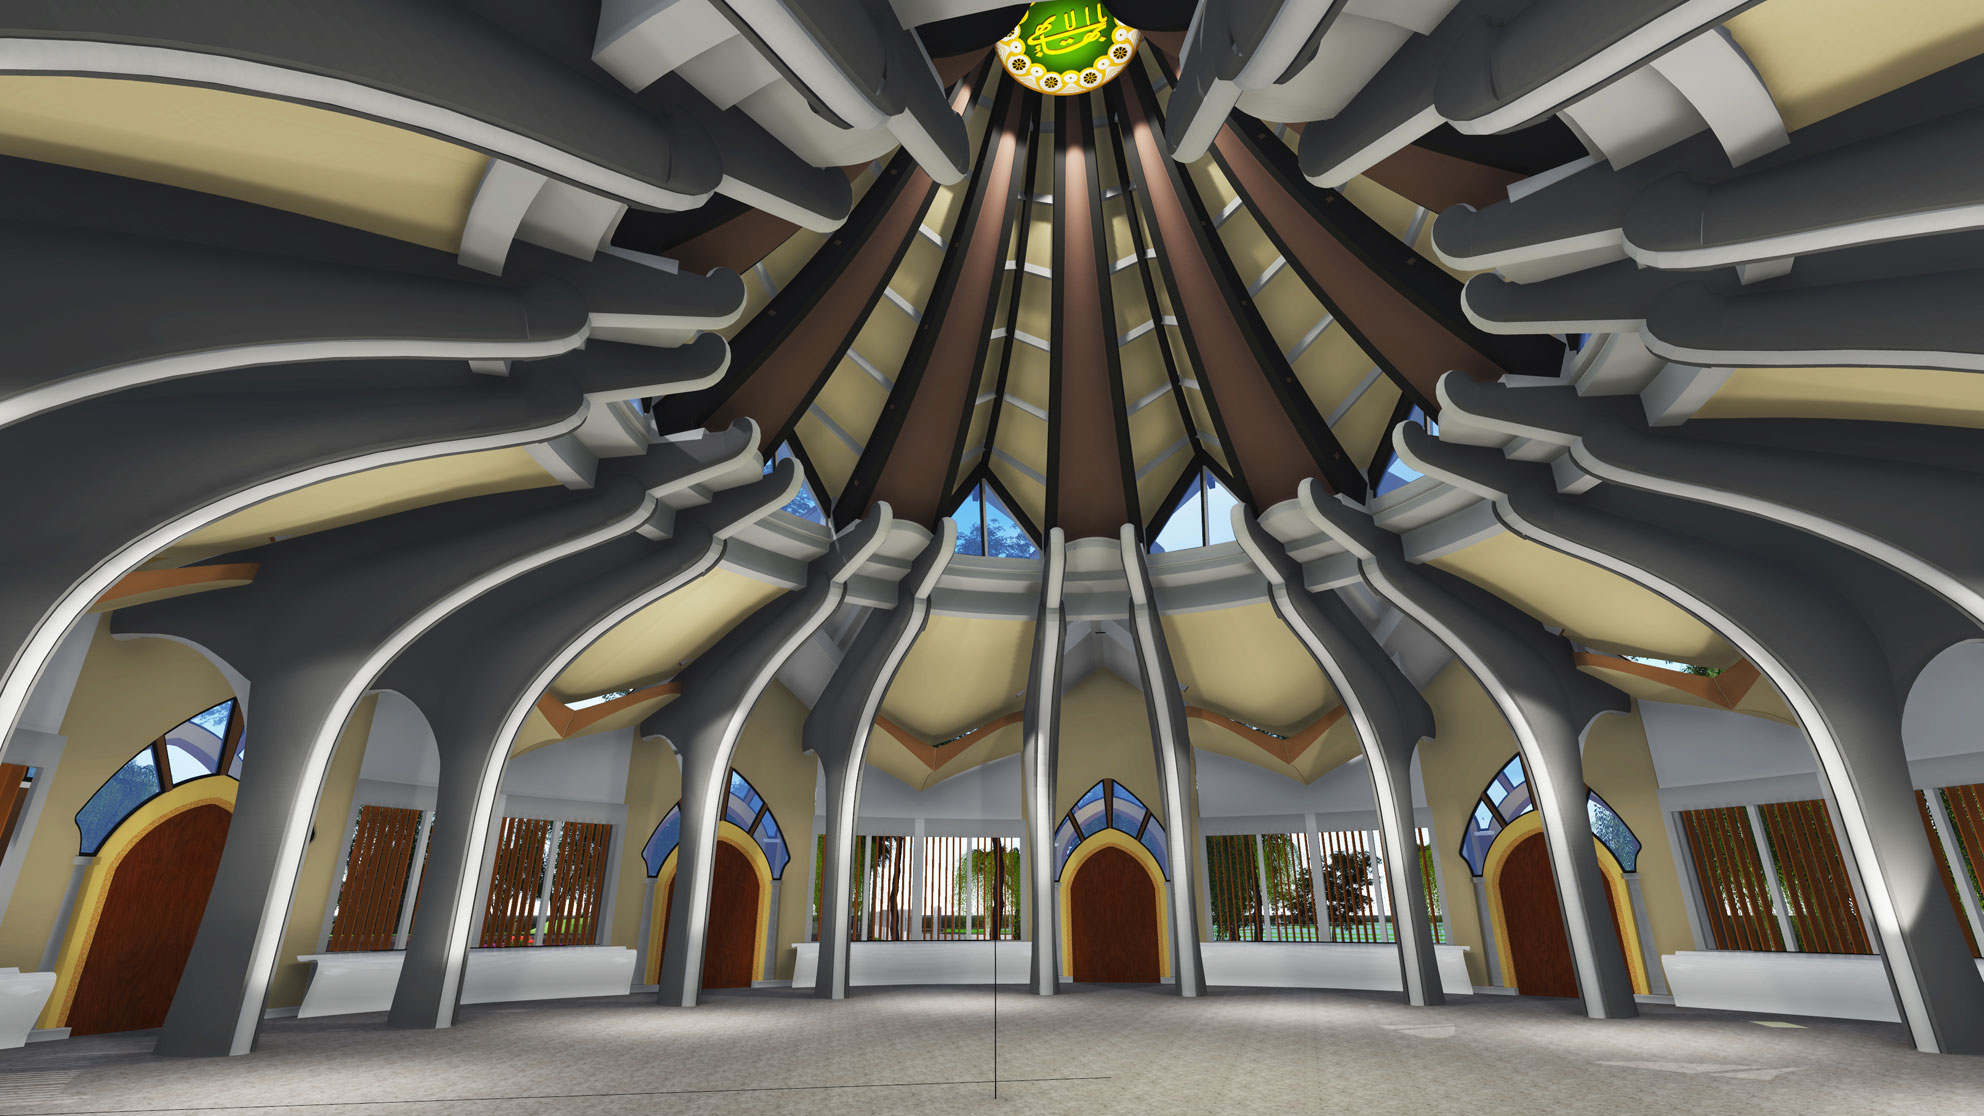 Baha i house of worship in battambang cambodia the for Temple inside home designs